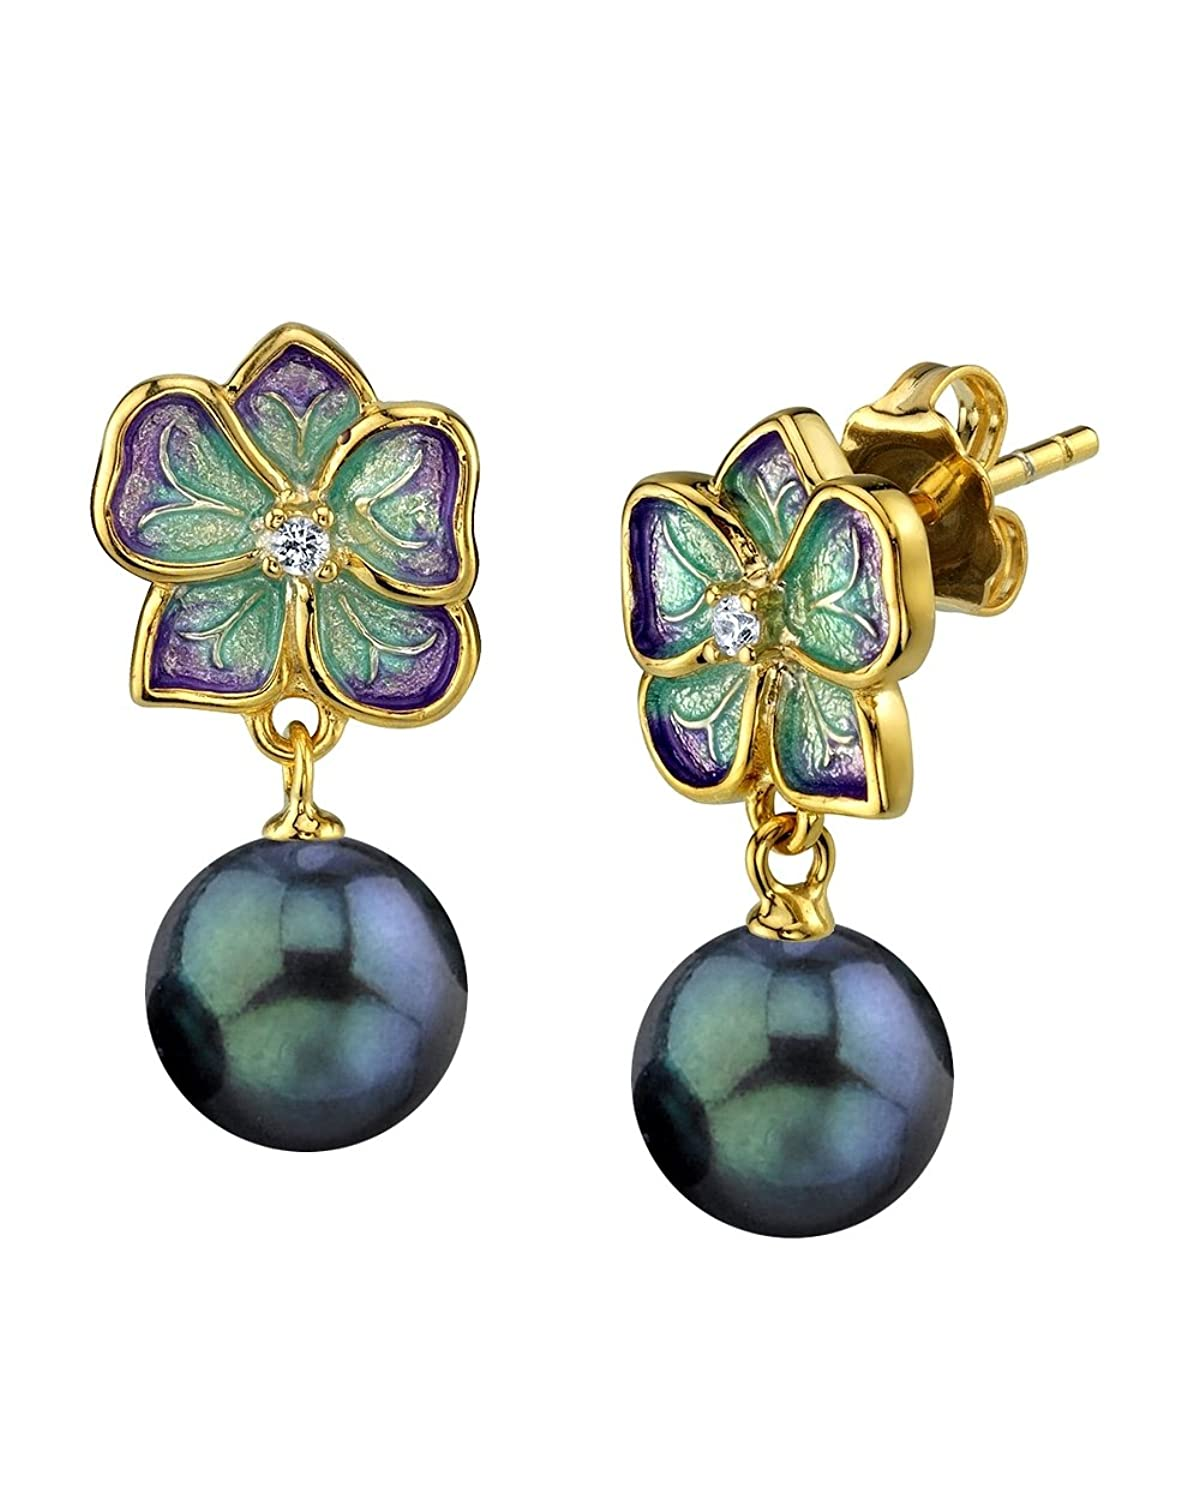 THE PEARL SOURCE Gold Plated Black Japanese Akoya Pearl & Crystal Maggie Earrings for Women